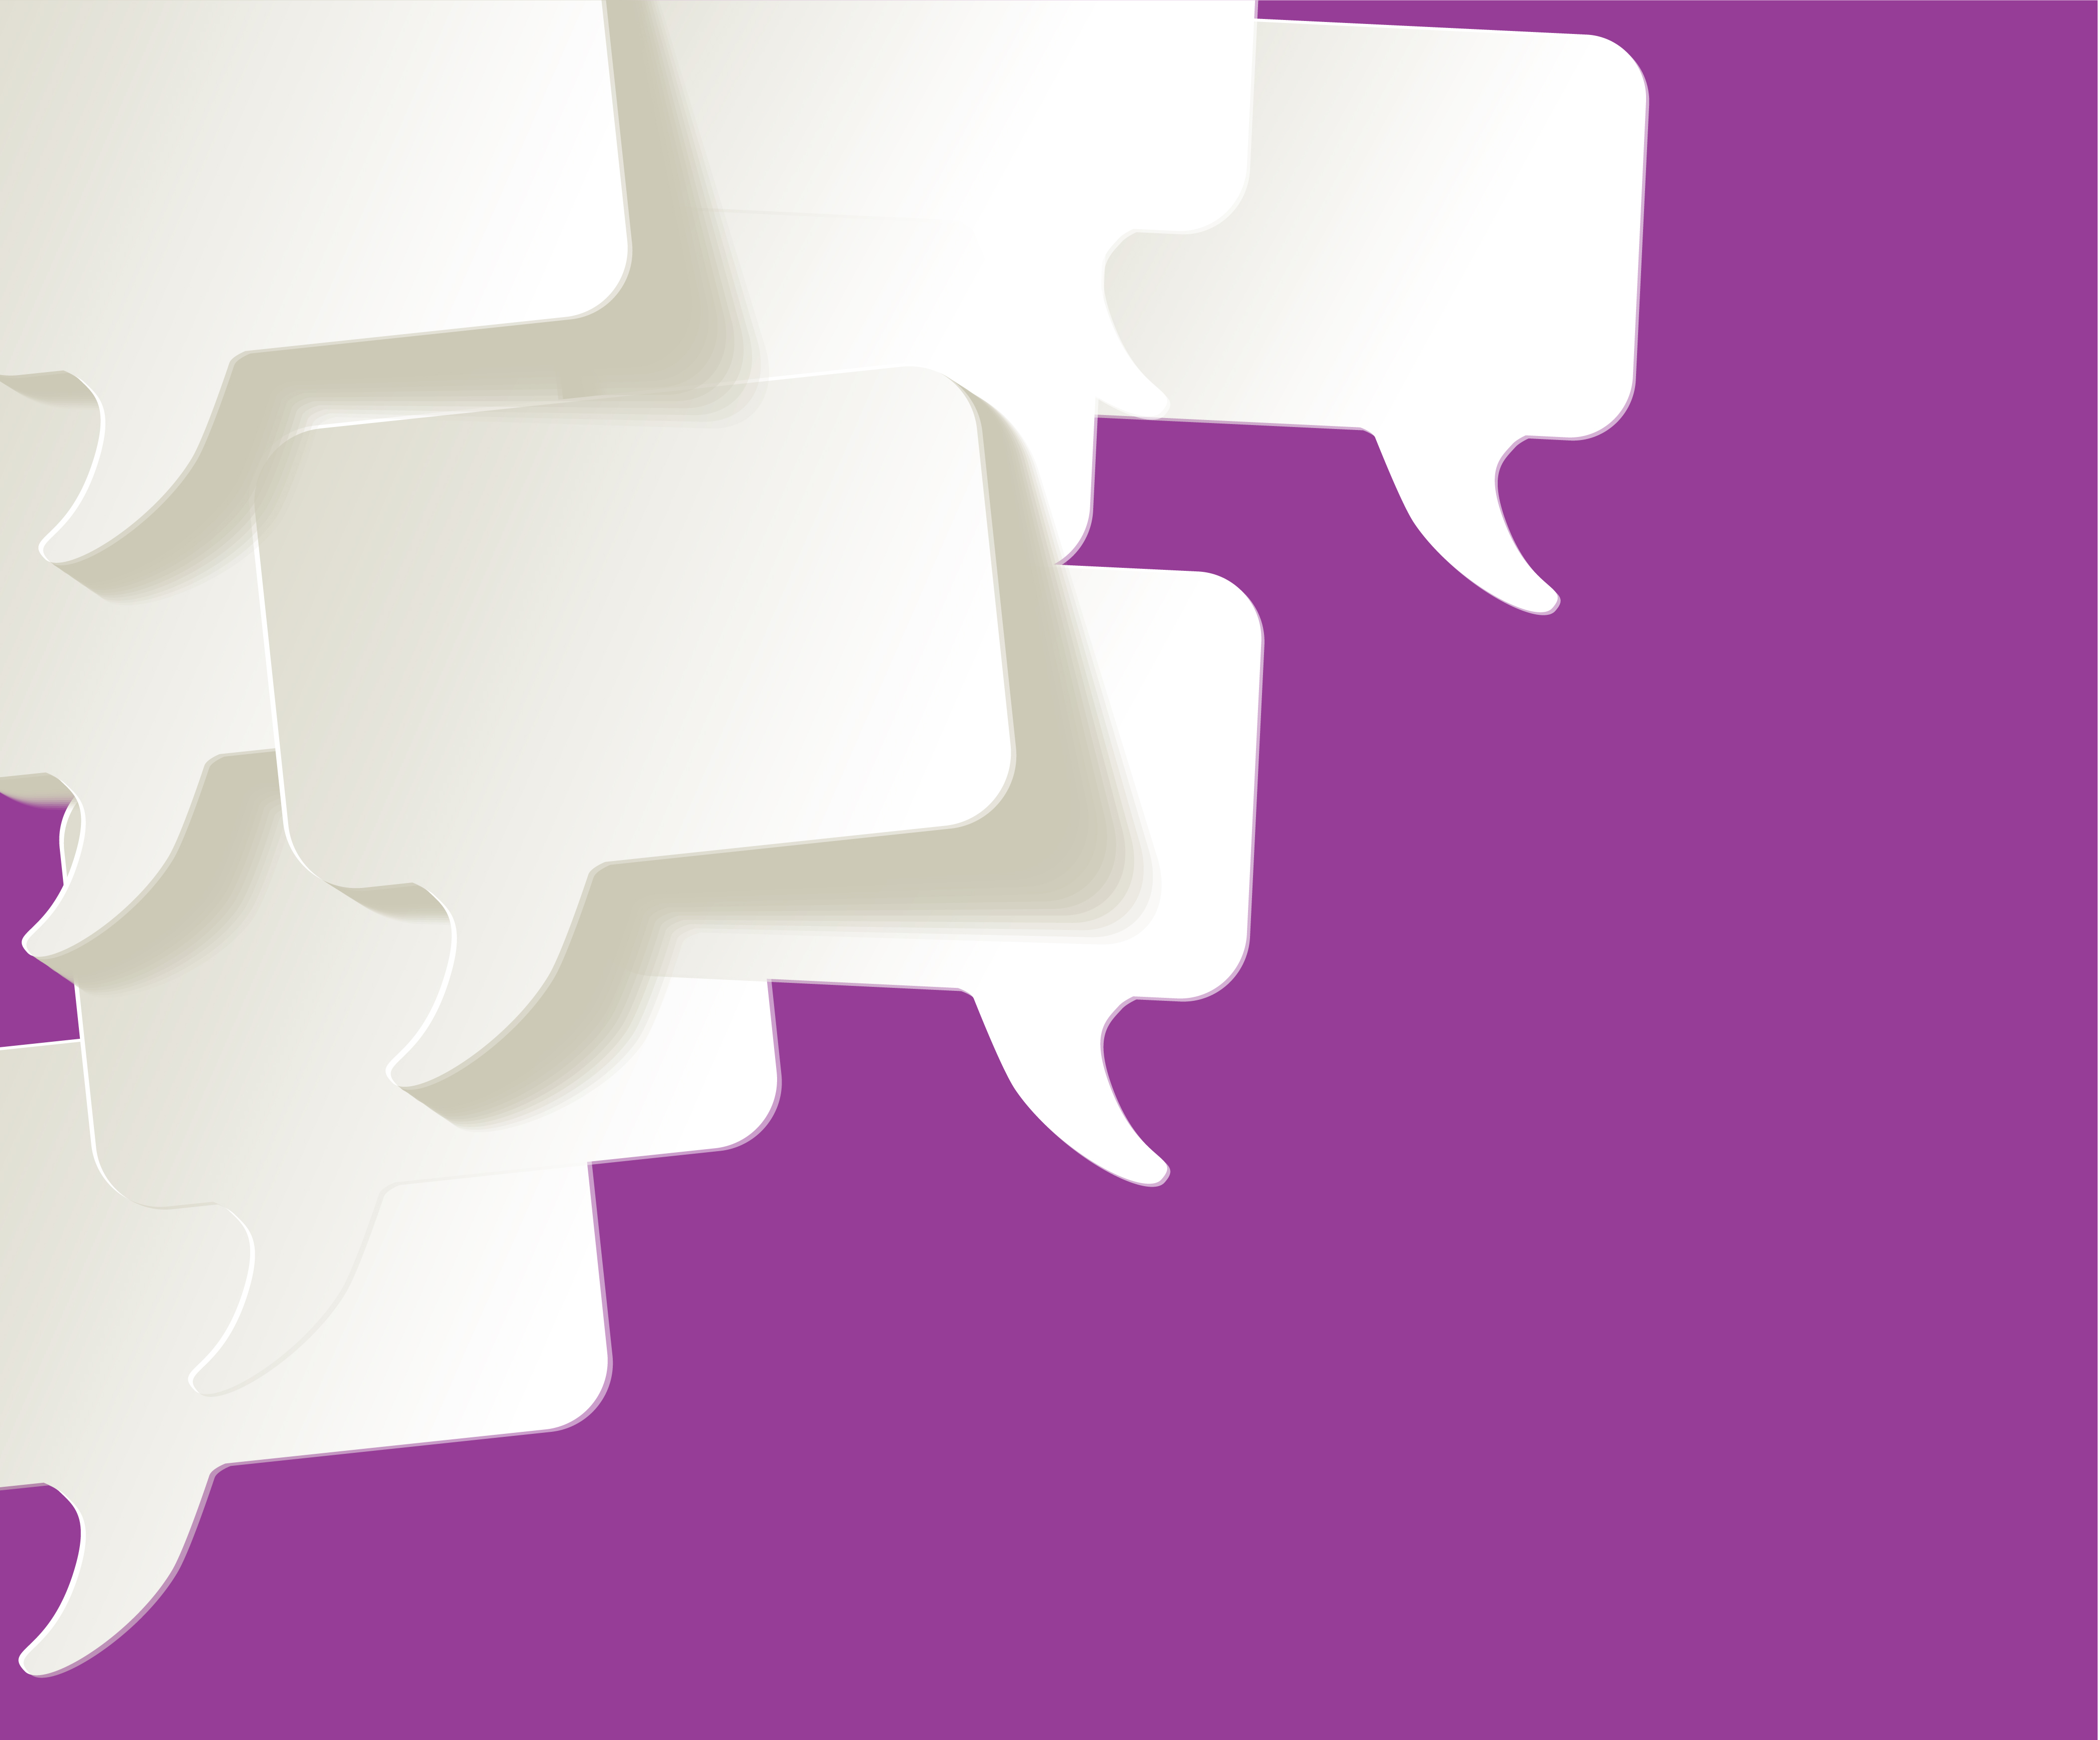 Illustration of 7 small speech bubbles set against a purple background.